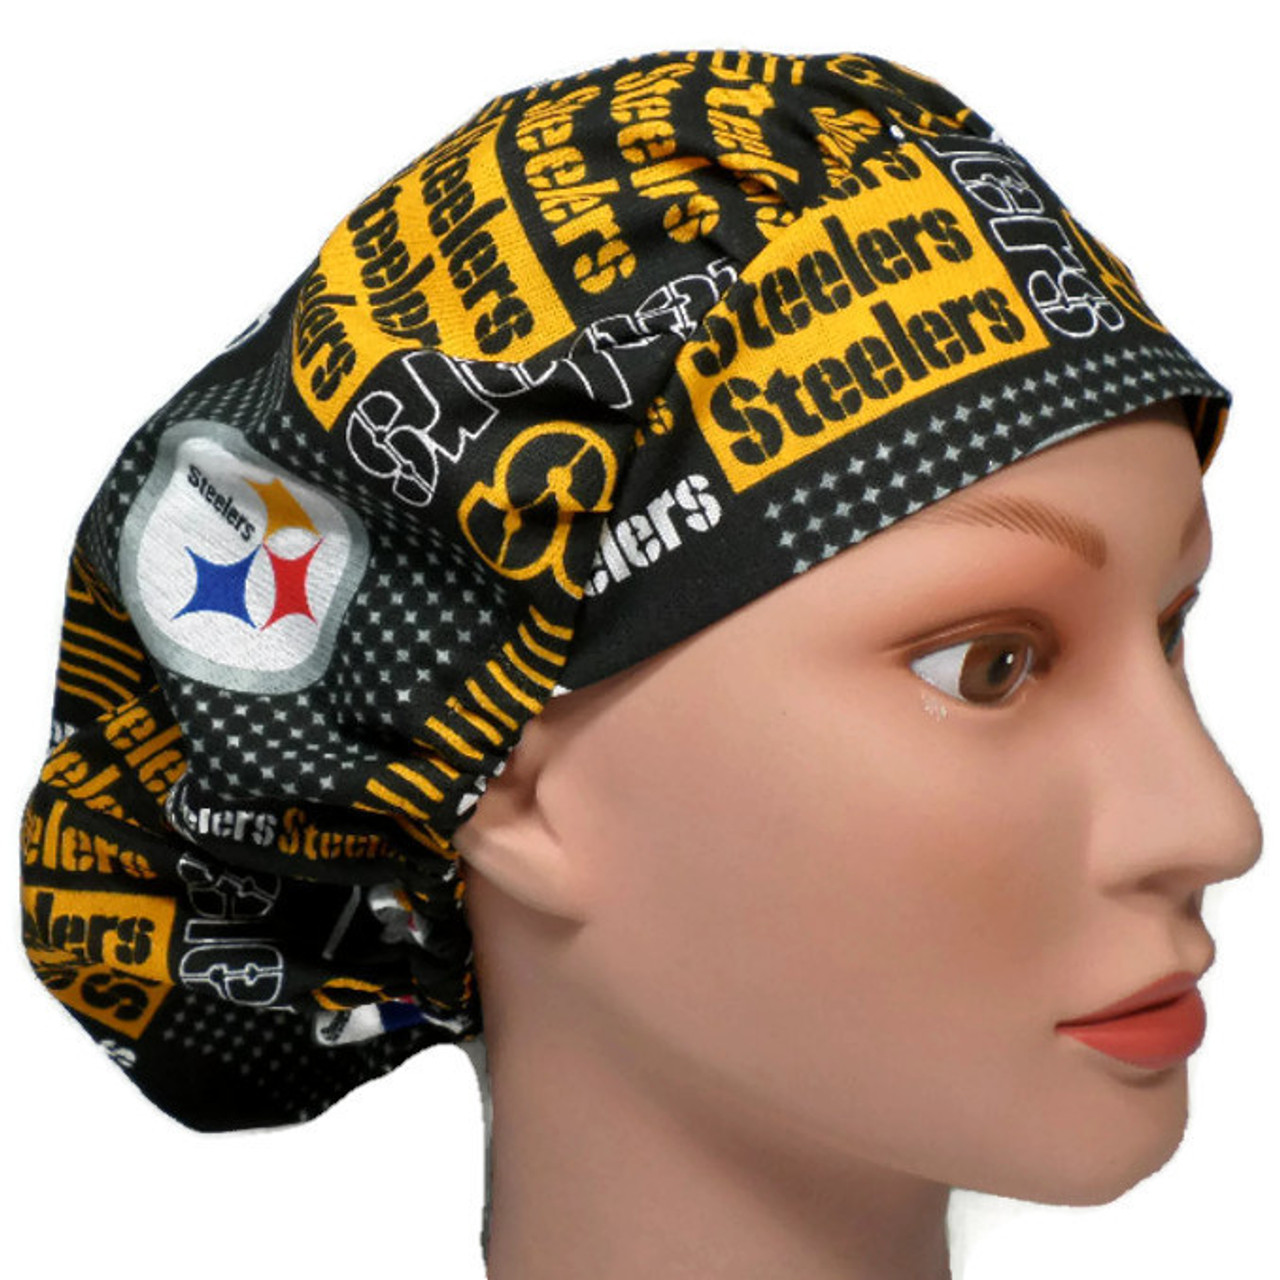 a32c39de0 Women's Adjustable Bouffant Surgical Scrub Hat Handmade with Pittsburgh  Steelers Squares fabric w/ elastic and cord-lock